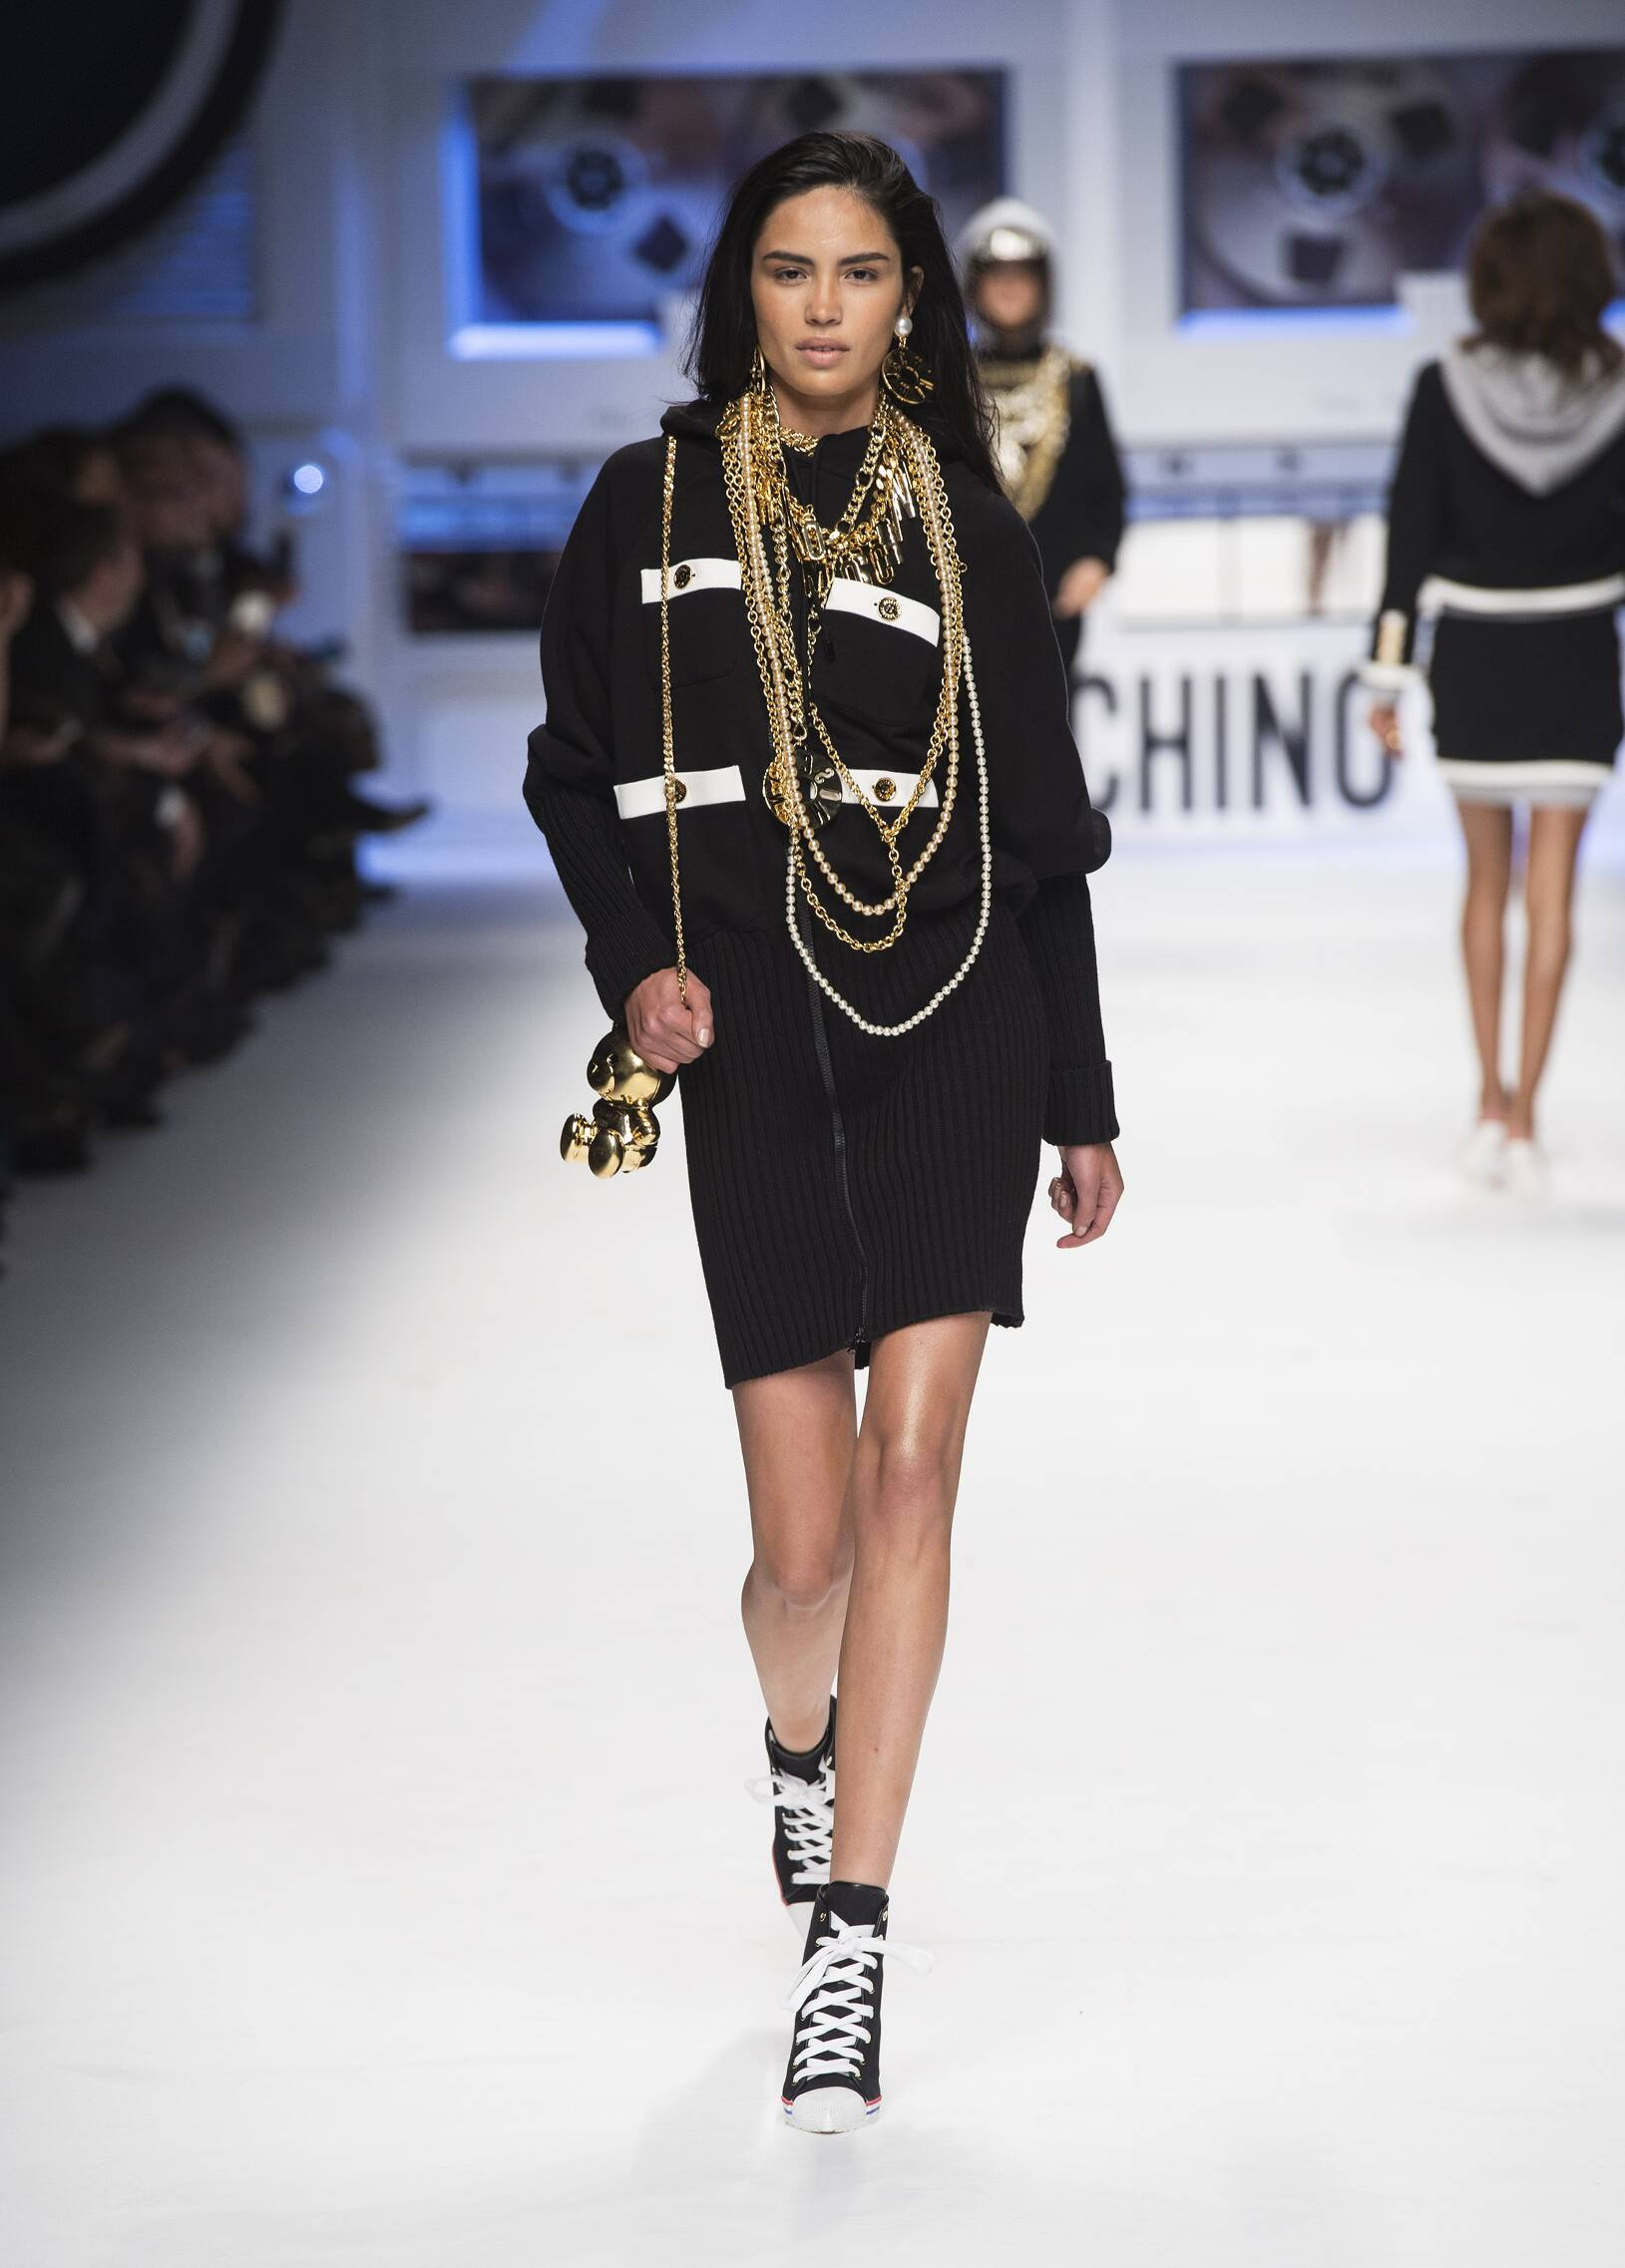 Catwalk Moschino Fall Winter 2015 16 Women's Collection Milan Fashion Week